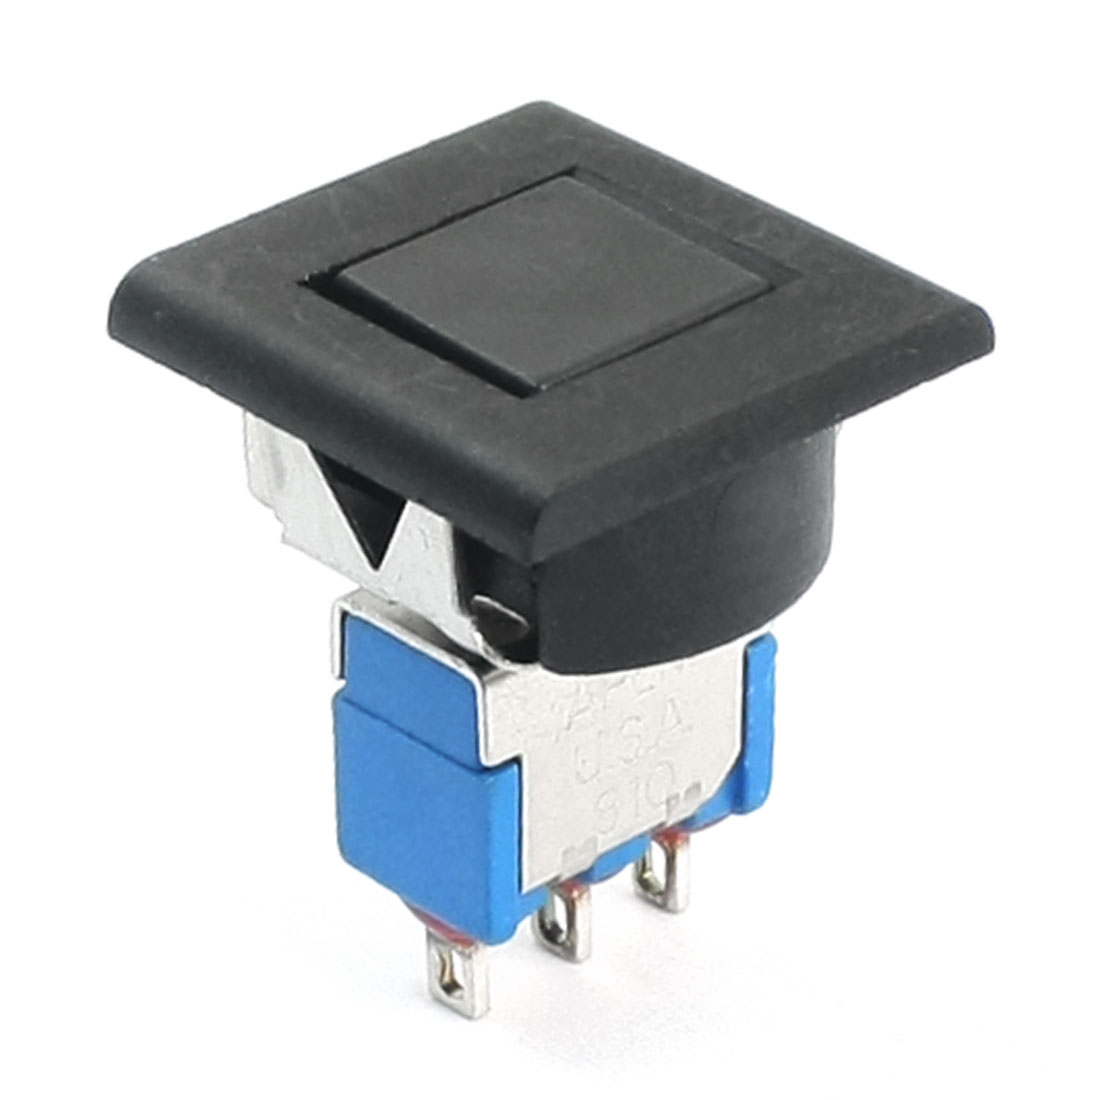 SPDT Momentary Black Button Toggle Switch AC250V 3A AC125V 6A